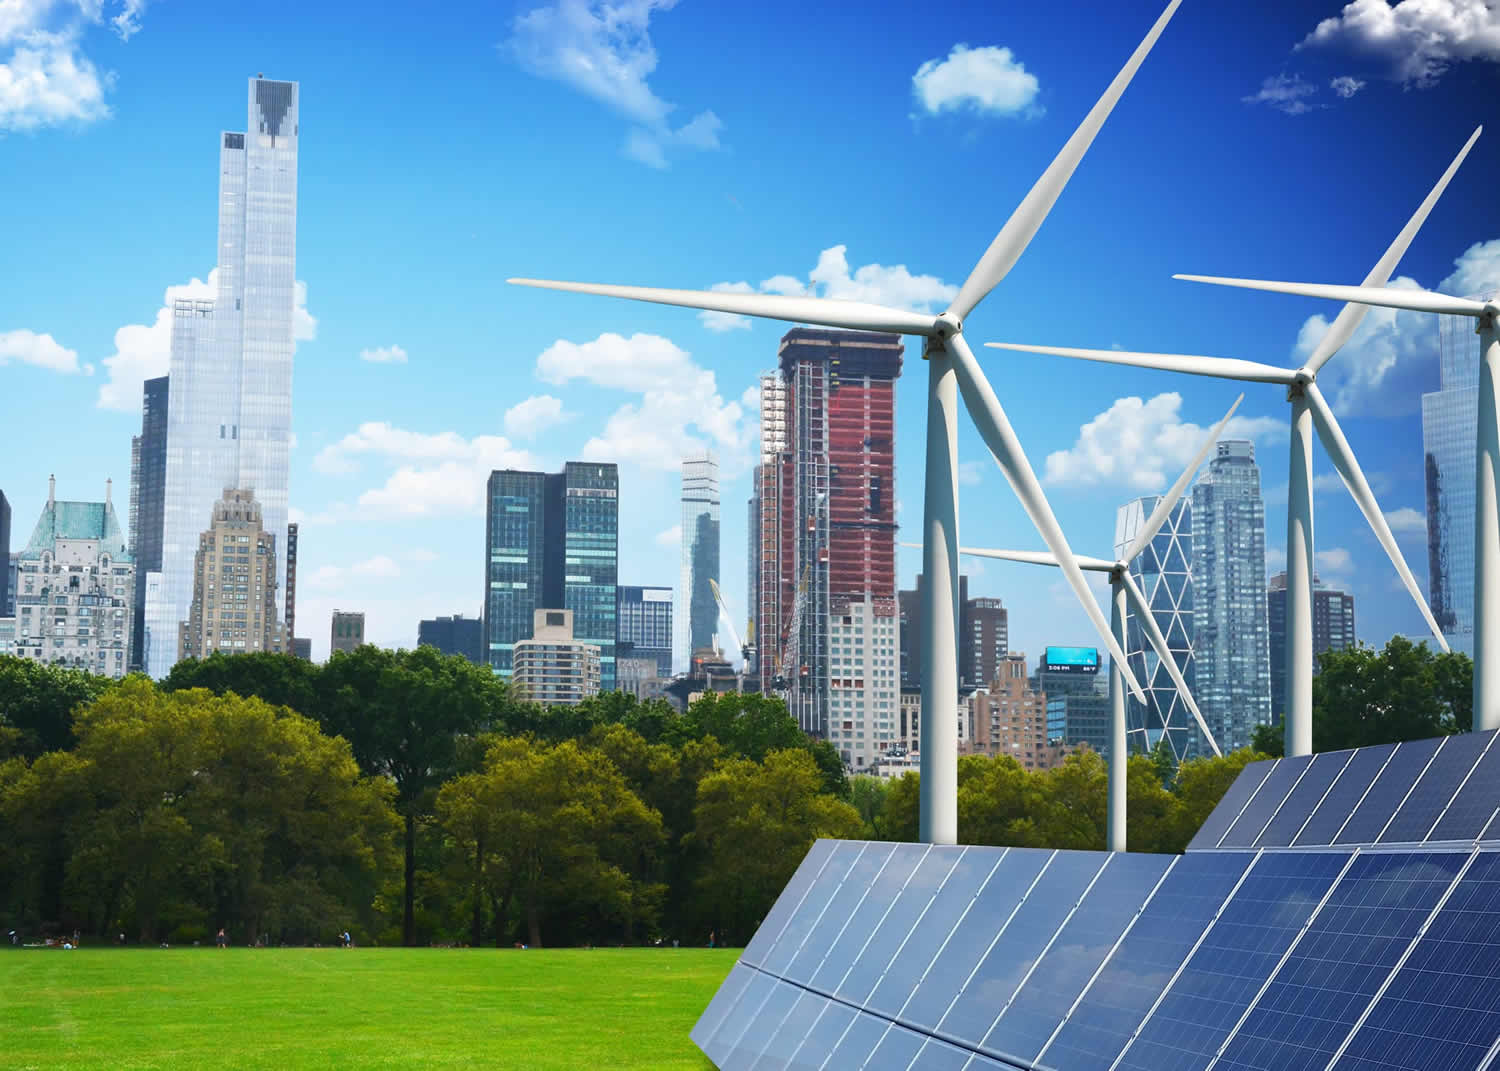 Corporate Community Mobilizing to Address Climate Crisis